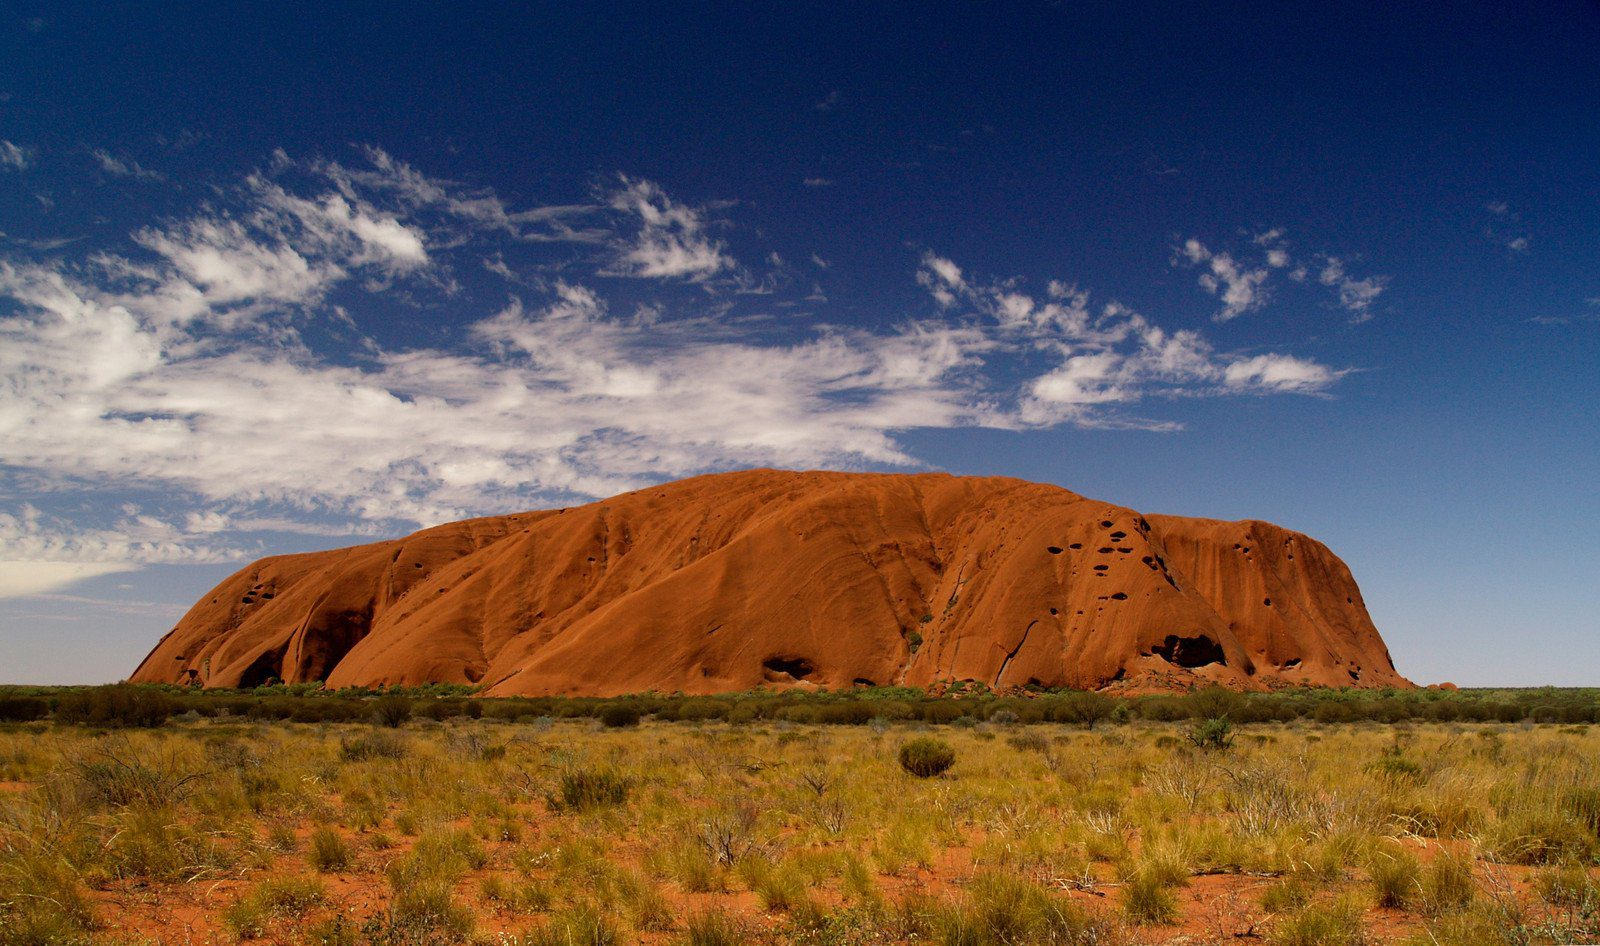 Uluru (Ayers Rock) in the Northern Territory, Australia